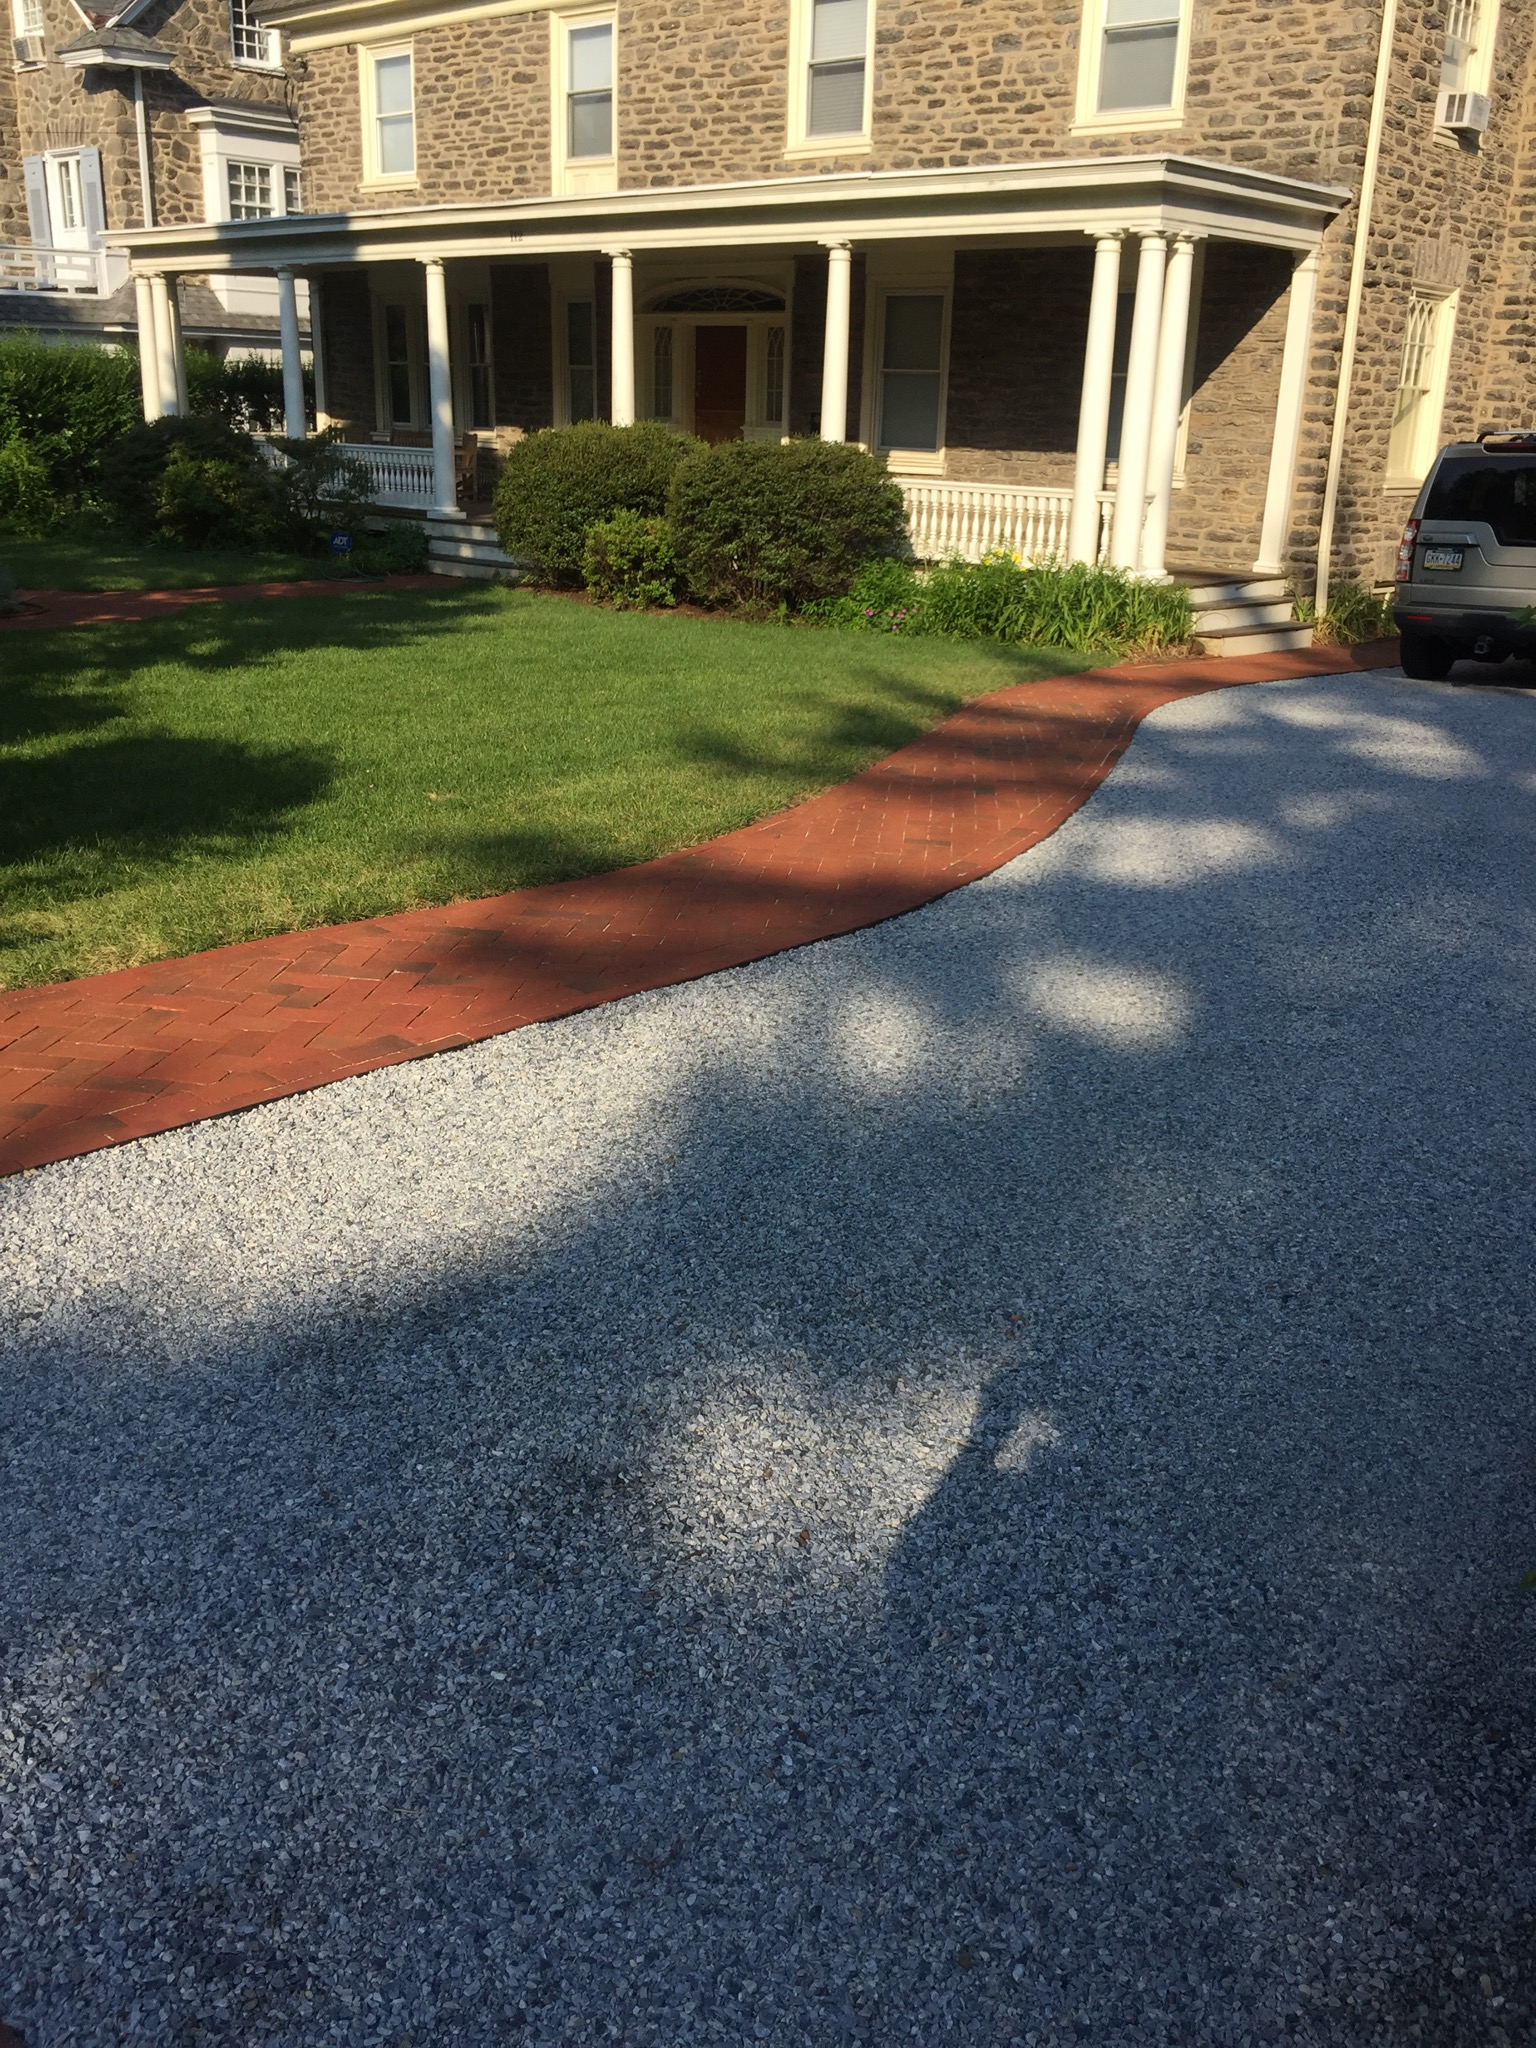 Crushed stone driveway with brick walkway